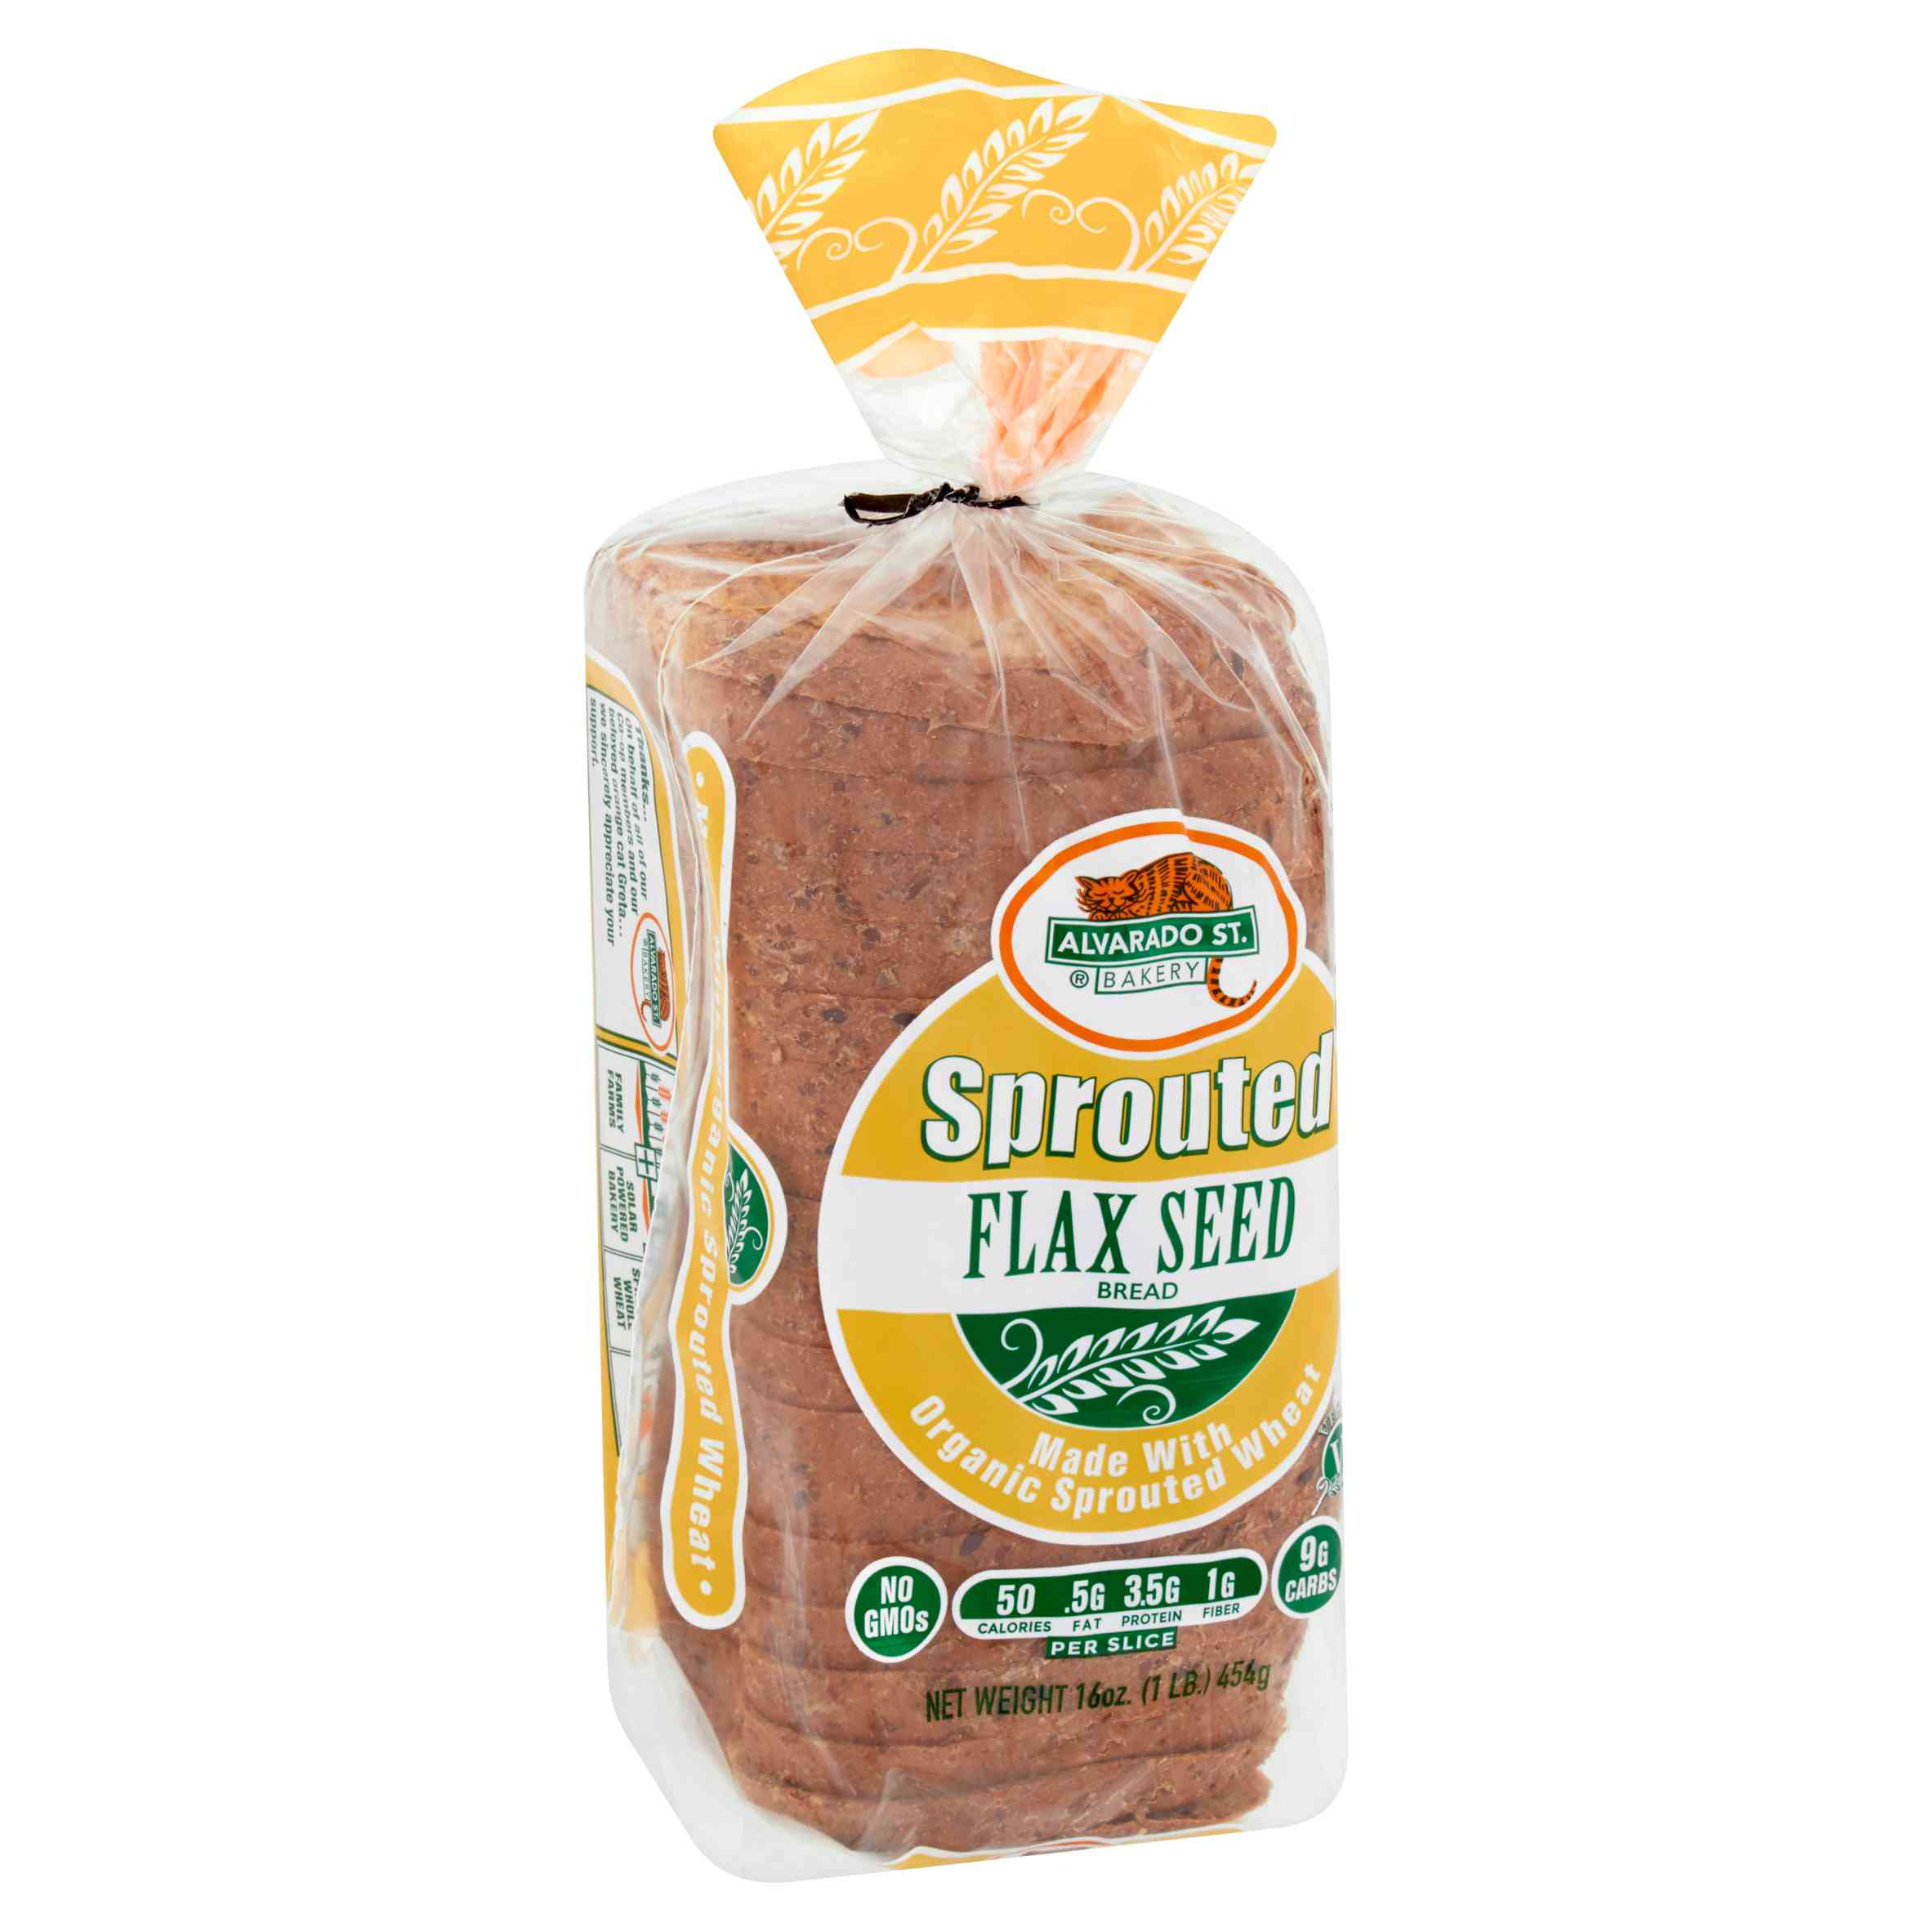 Alvarado St. Bakery Sprouted Flax Seed Bread